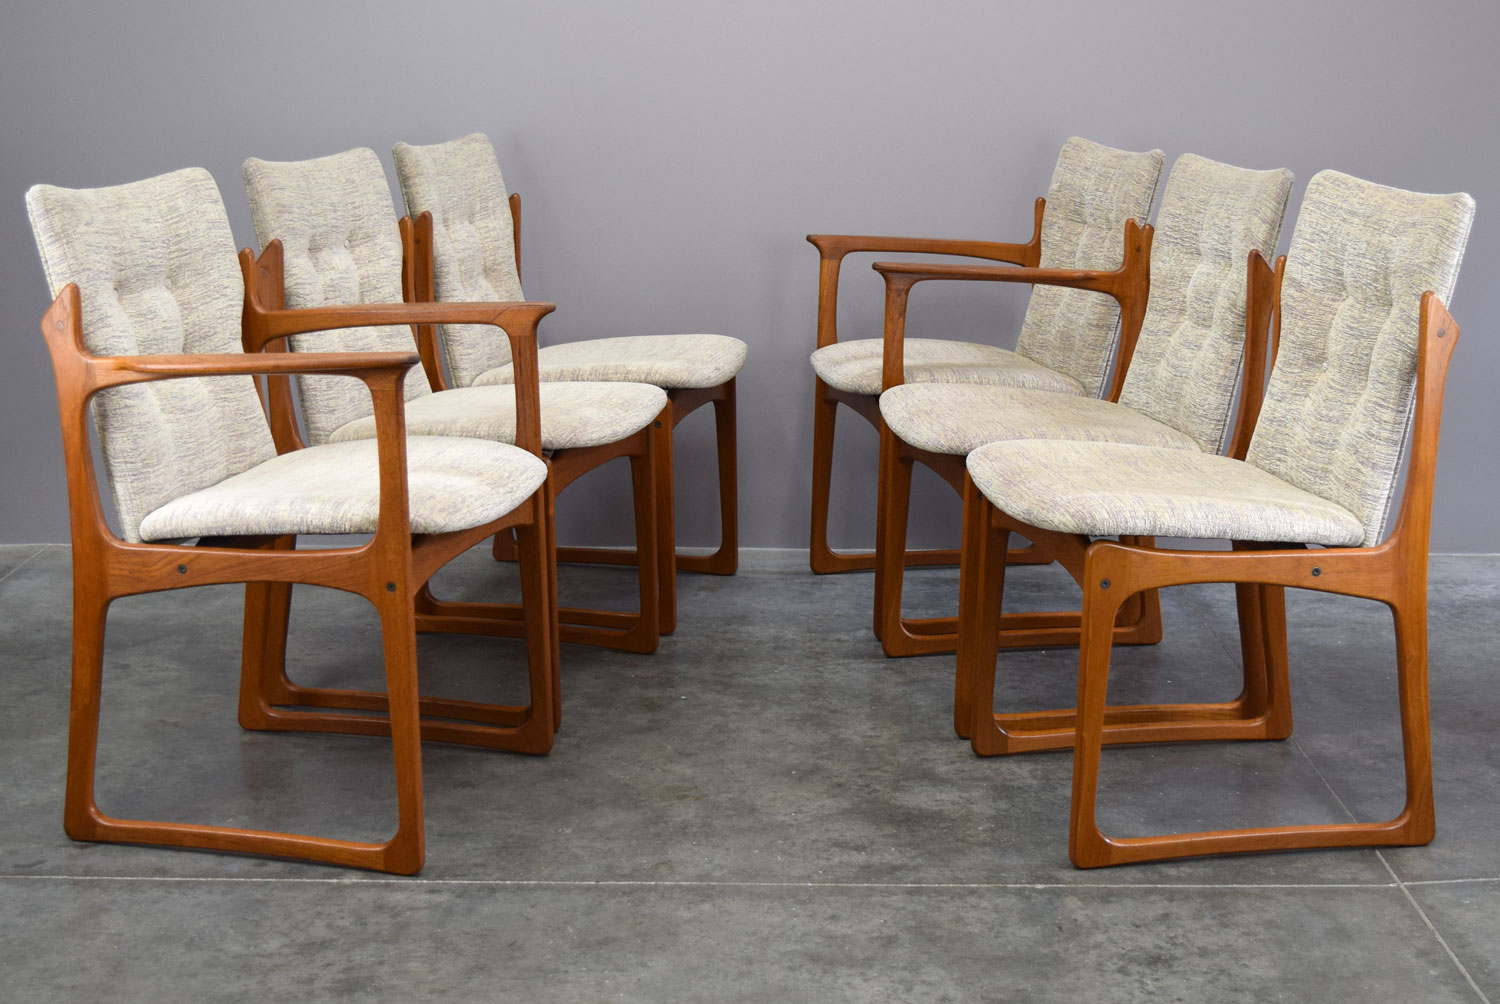 Prime Danish Teak Dining Chairs By Vamdrup Stolefabrik Set 6 Beatyapartments Chair Design Images Beatyapartmentscom